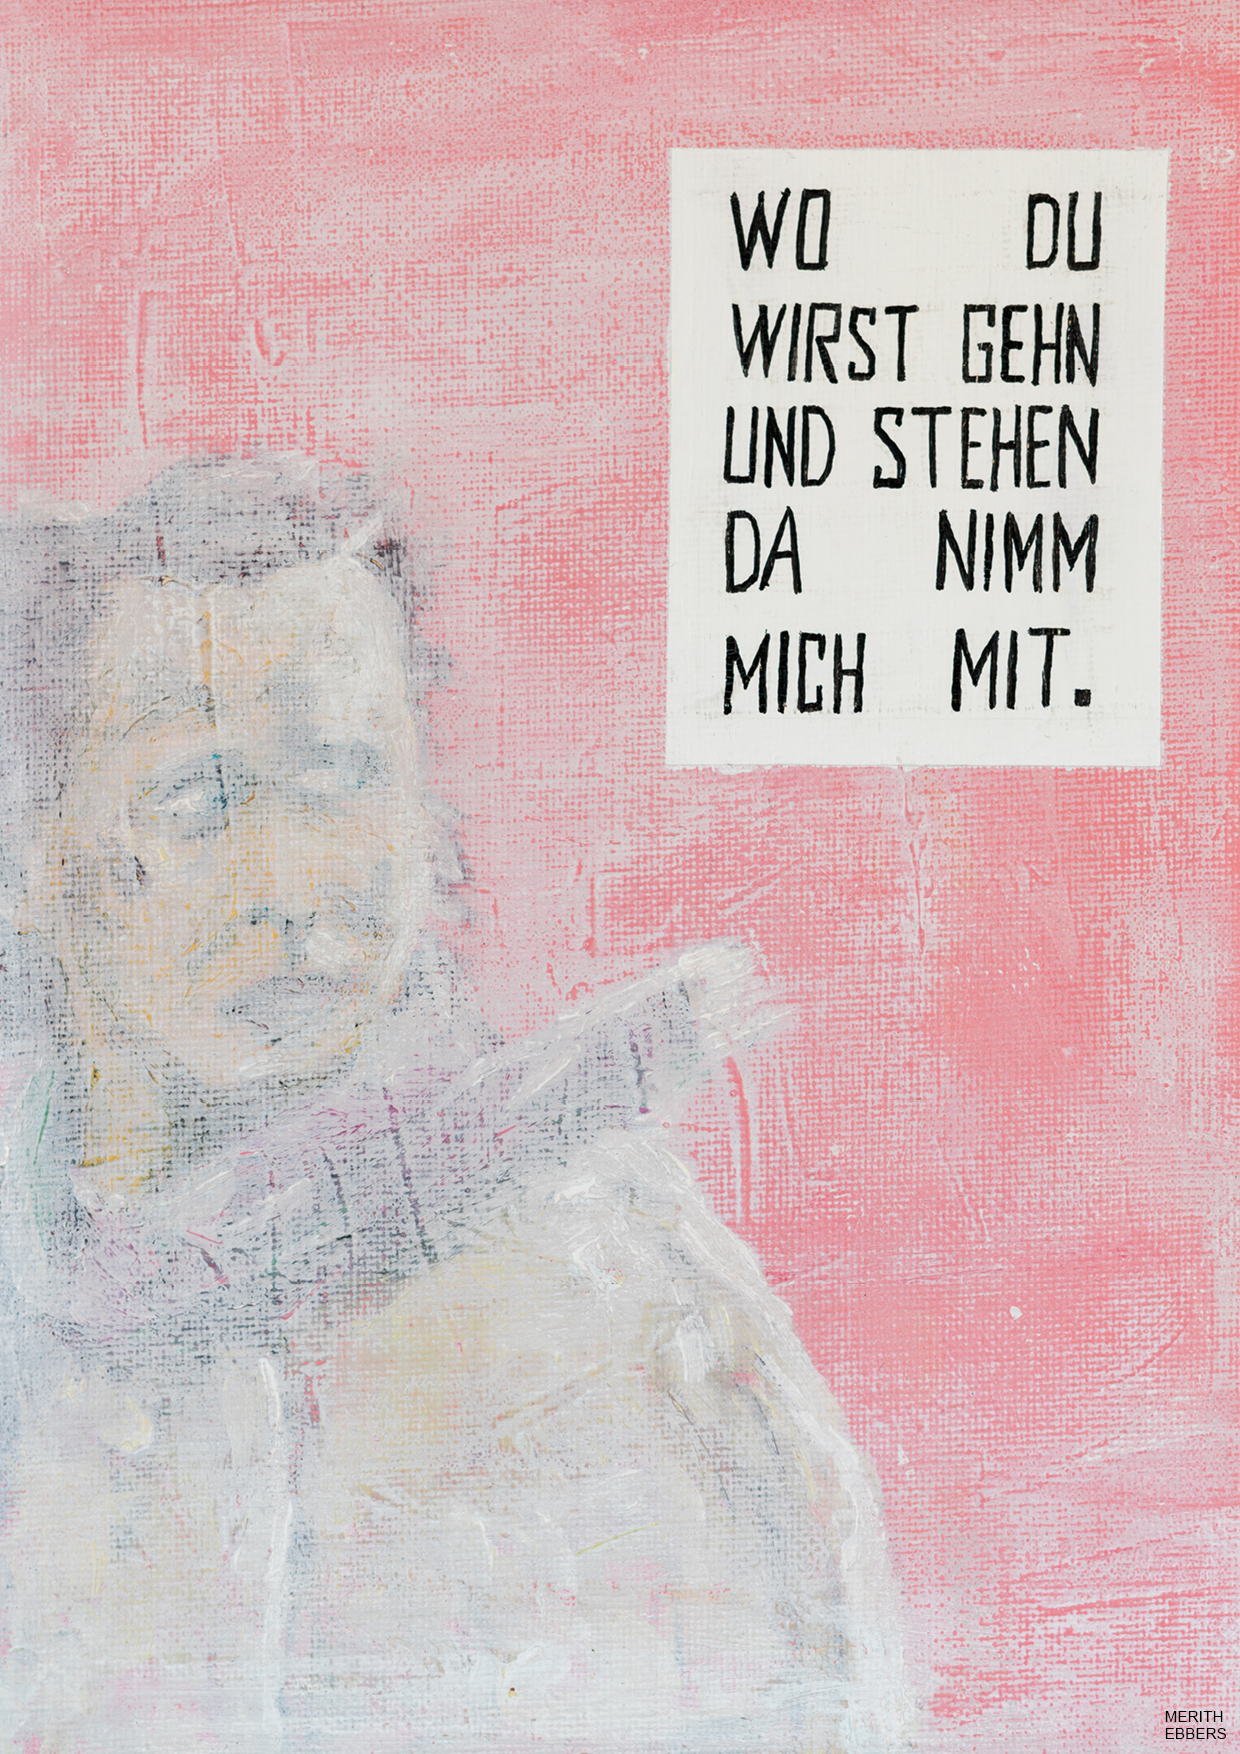 A painting with a pink background on it you see a girl looking over her shoulder and next to her the text: Wo Du wirst gehen und stehen, da nimm mich mit. Which translated from German is: Where You will go and where You will stand, take me with you there. The text is from a German song called 'So nimm denn meine Hände.'